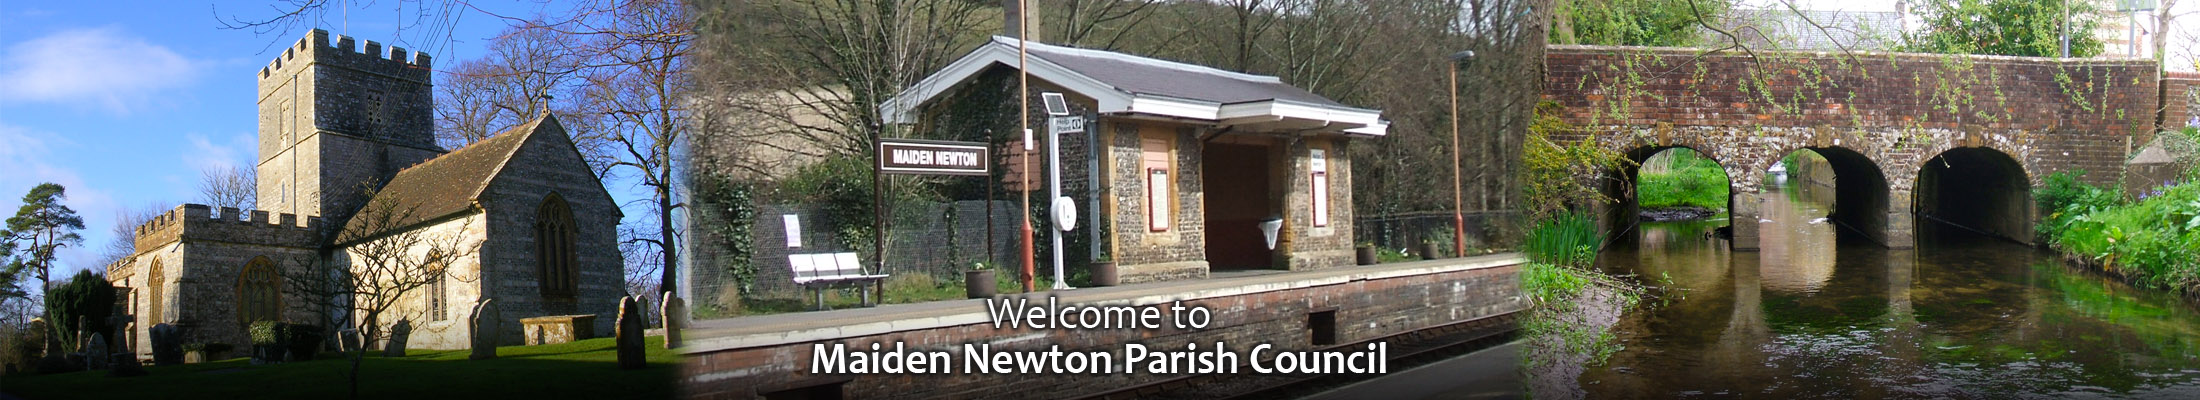 Header Image for Maiden Newton Parish Council